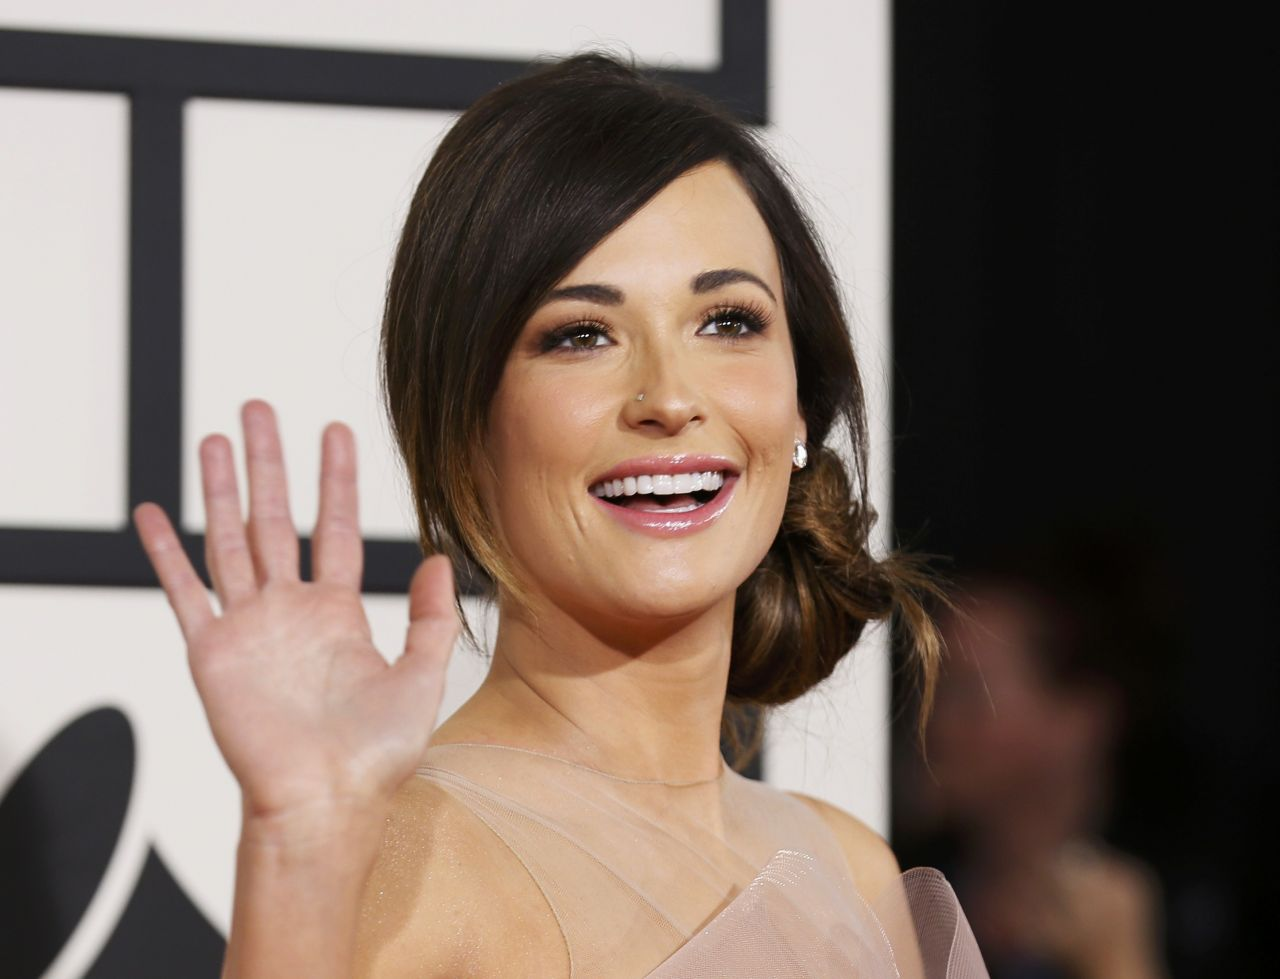 Kacey Musgraves Wears Wearing Armani Privé at 56th Annual Grammy Awards - Jan. 2014